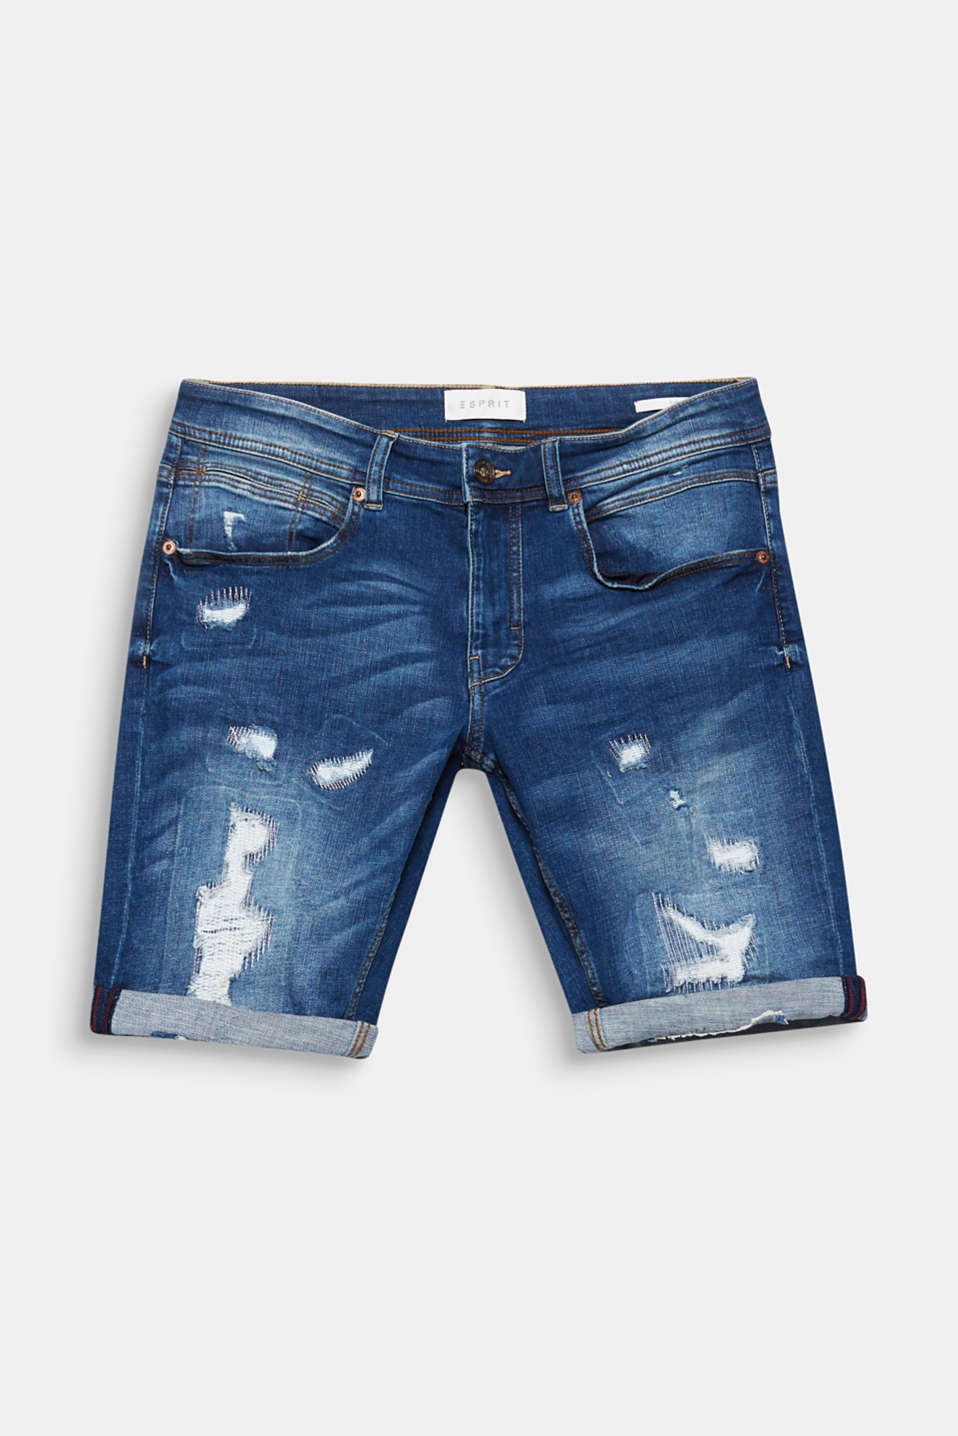 Distinctive distressed effects make these denim shorts with super stretch for comfort a head-turning piece!